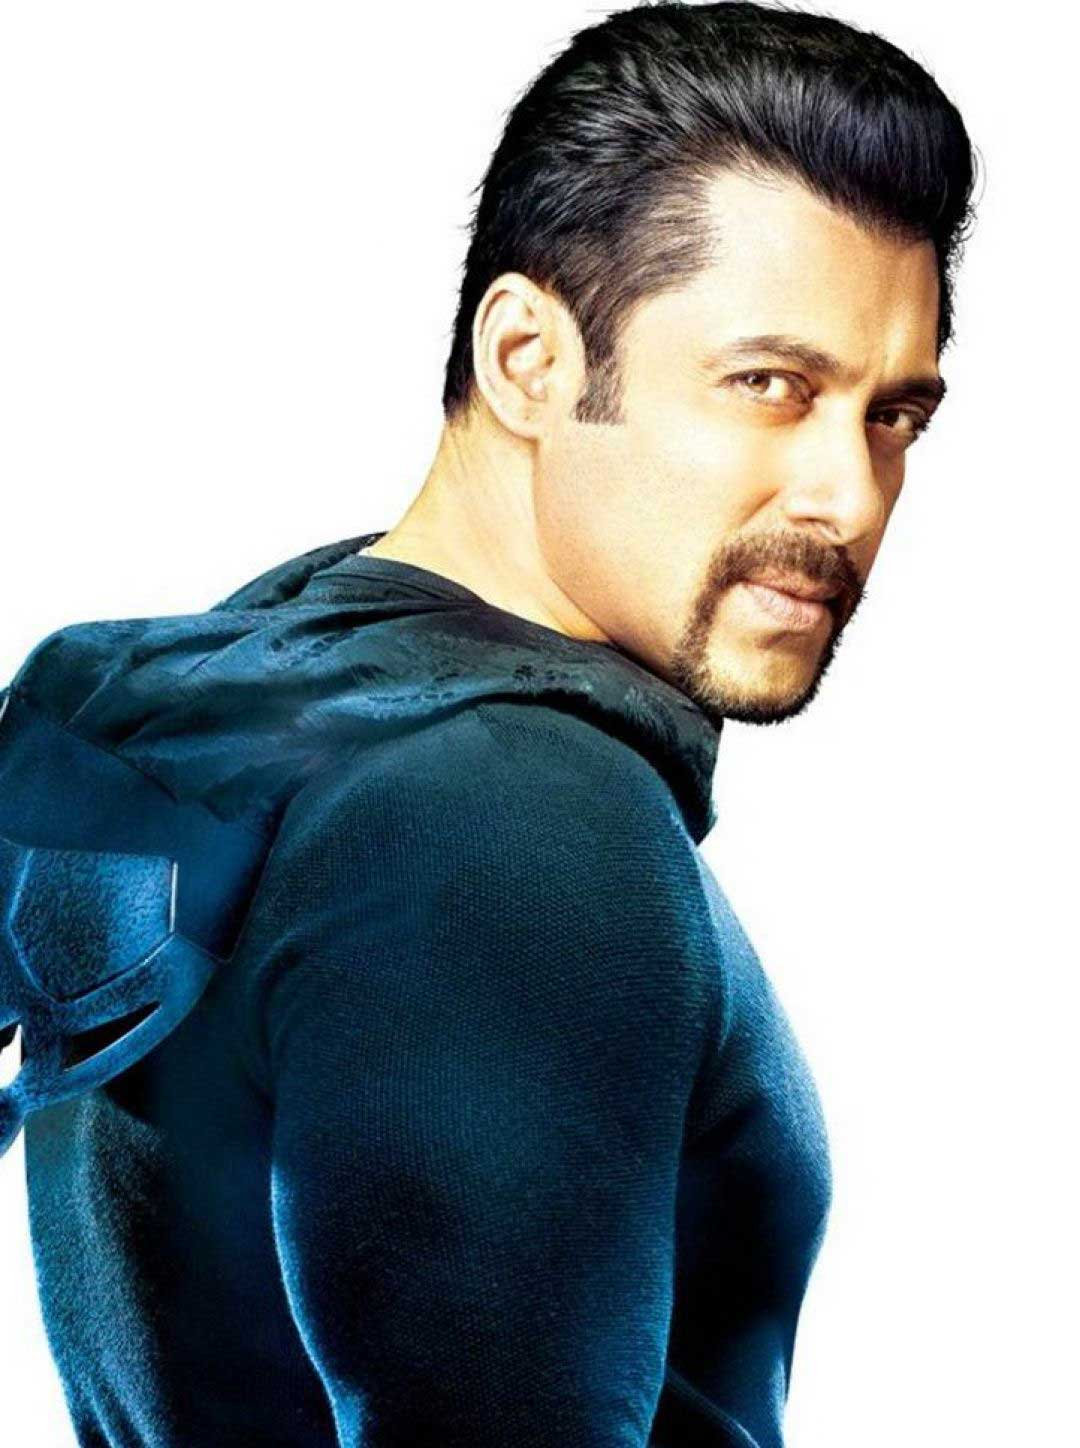 Salman Khan Images HD Free 40